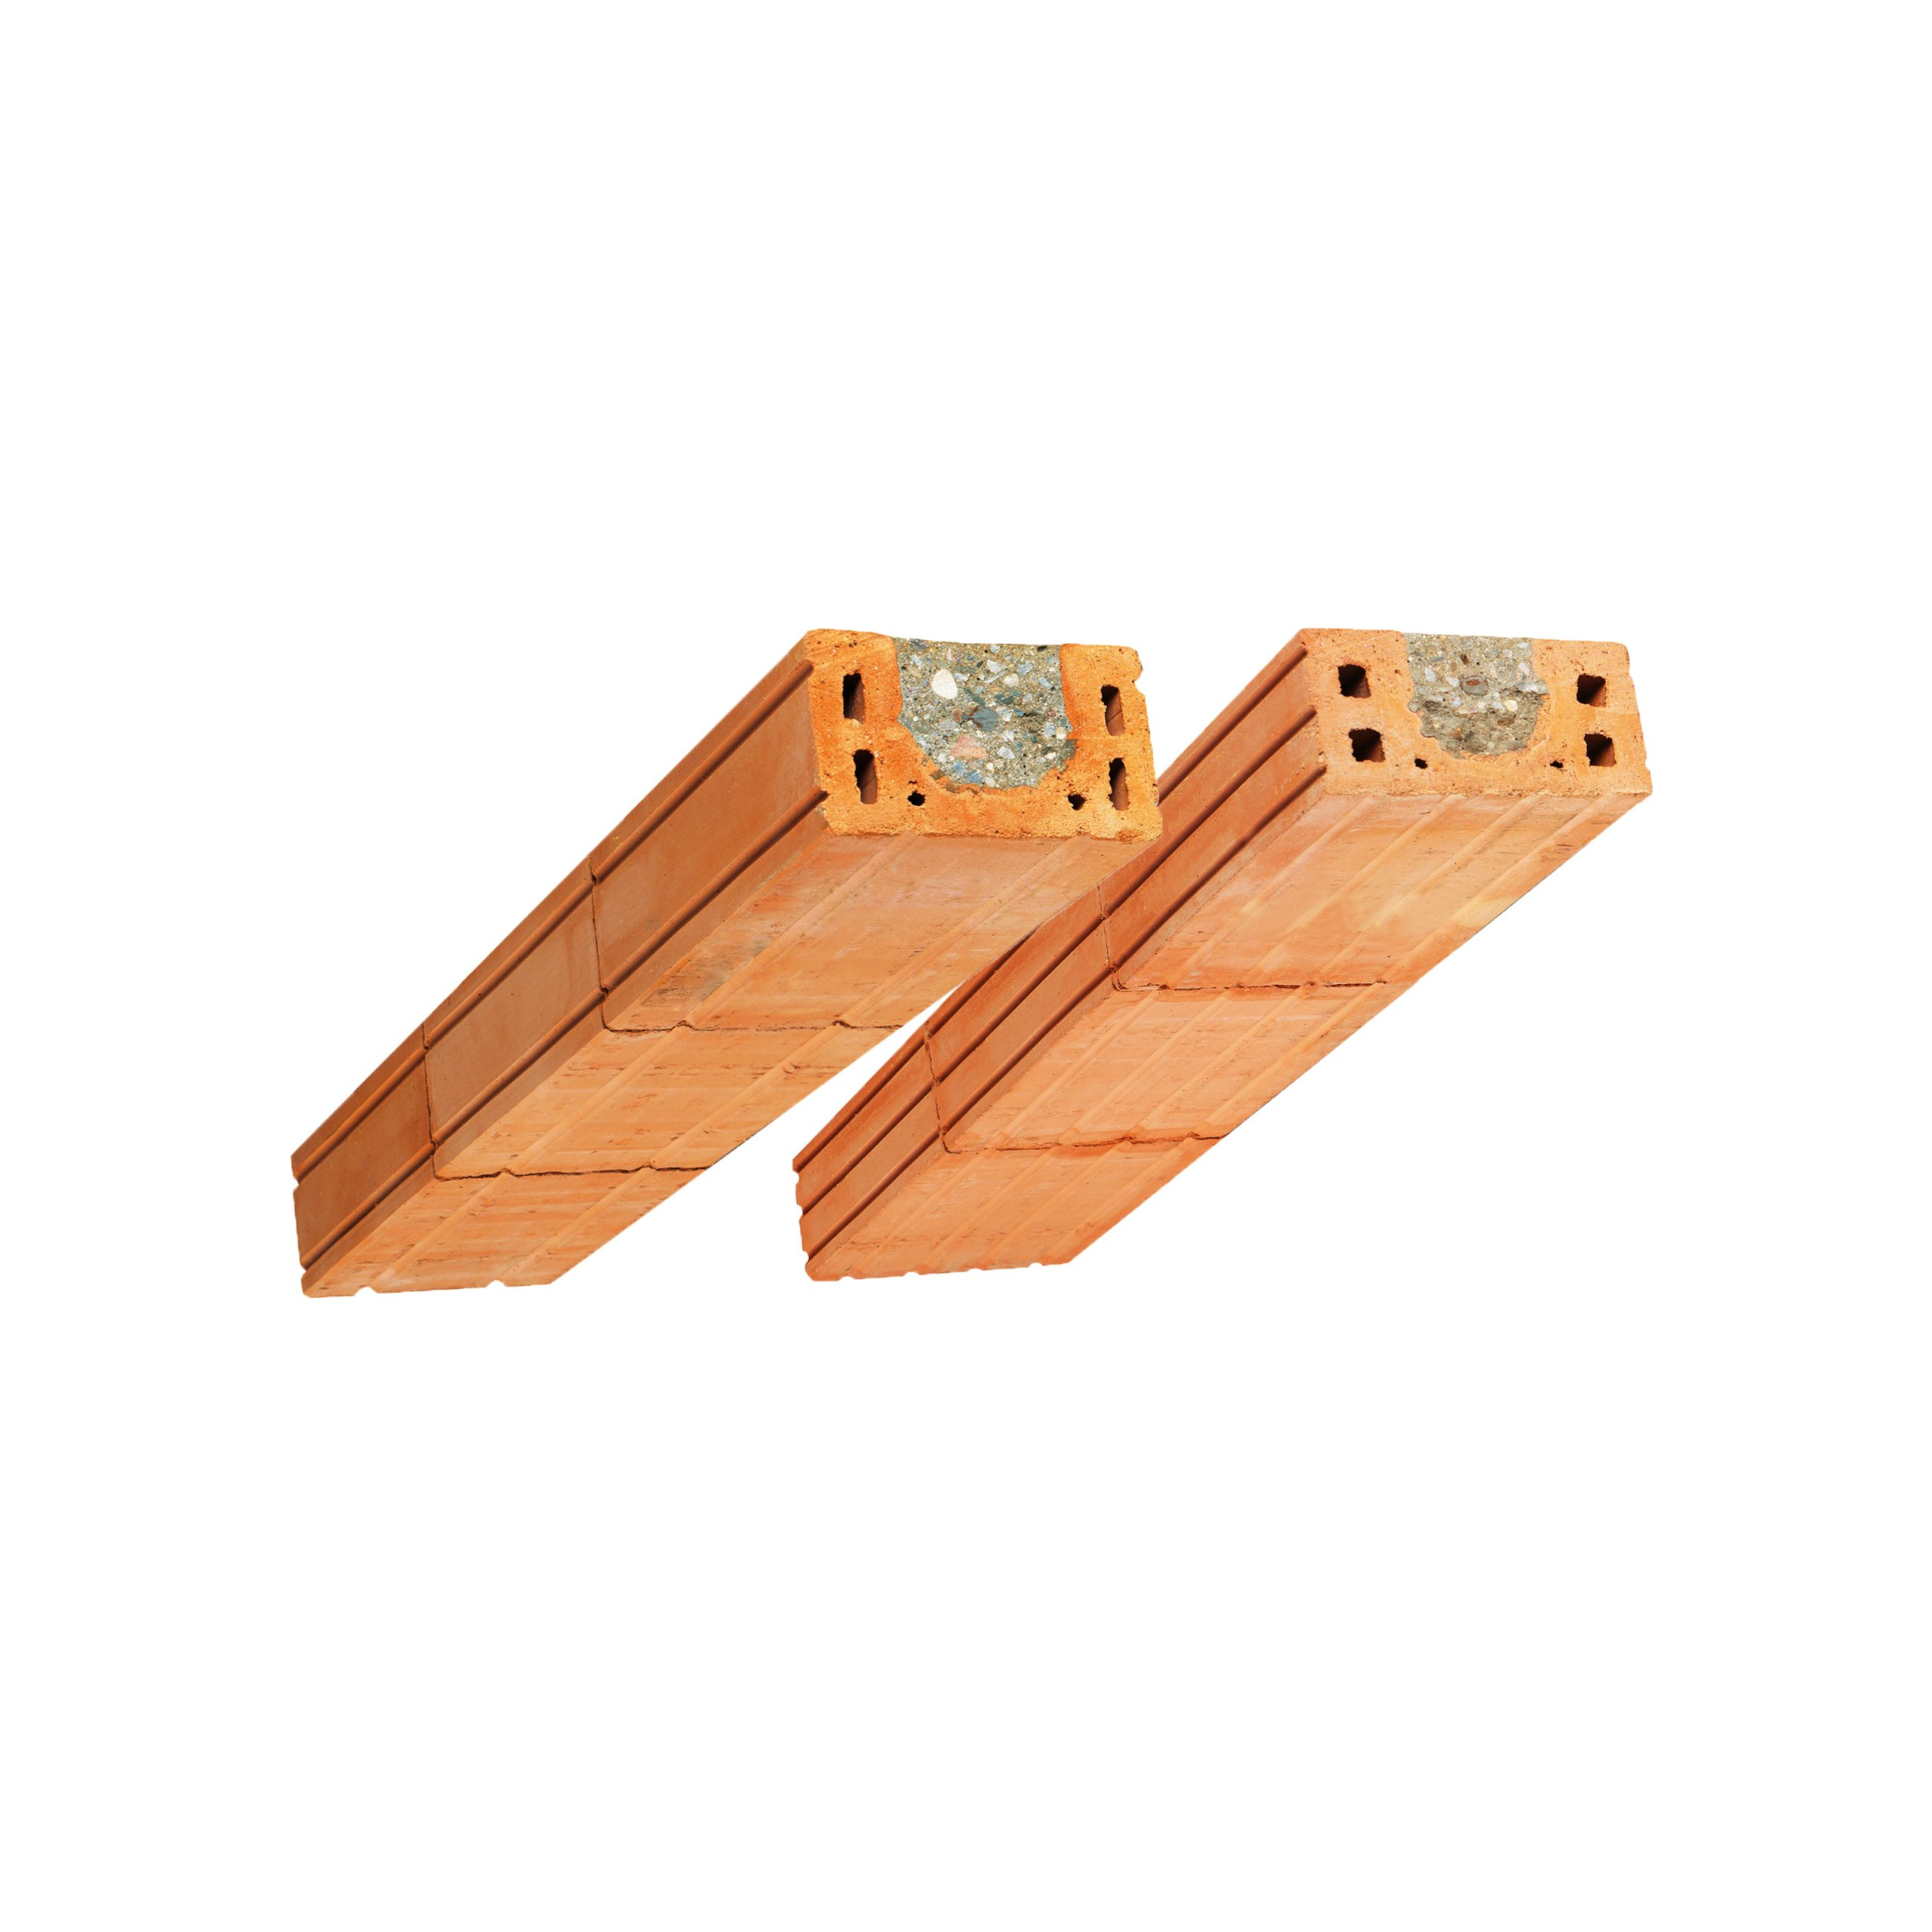 Set of Porotherm KP 11,5 and 14,5 – flat lintels